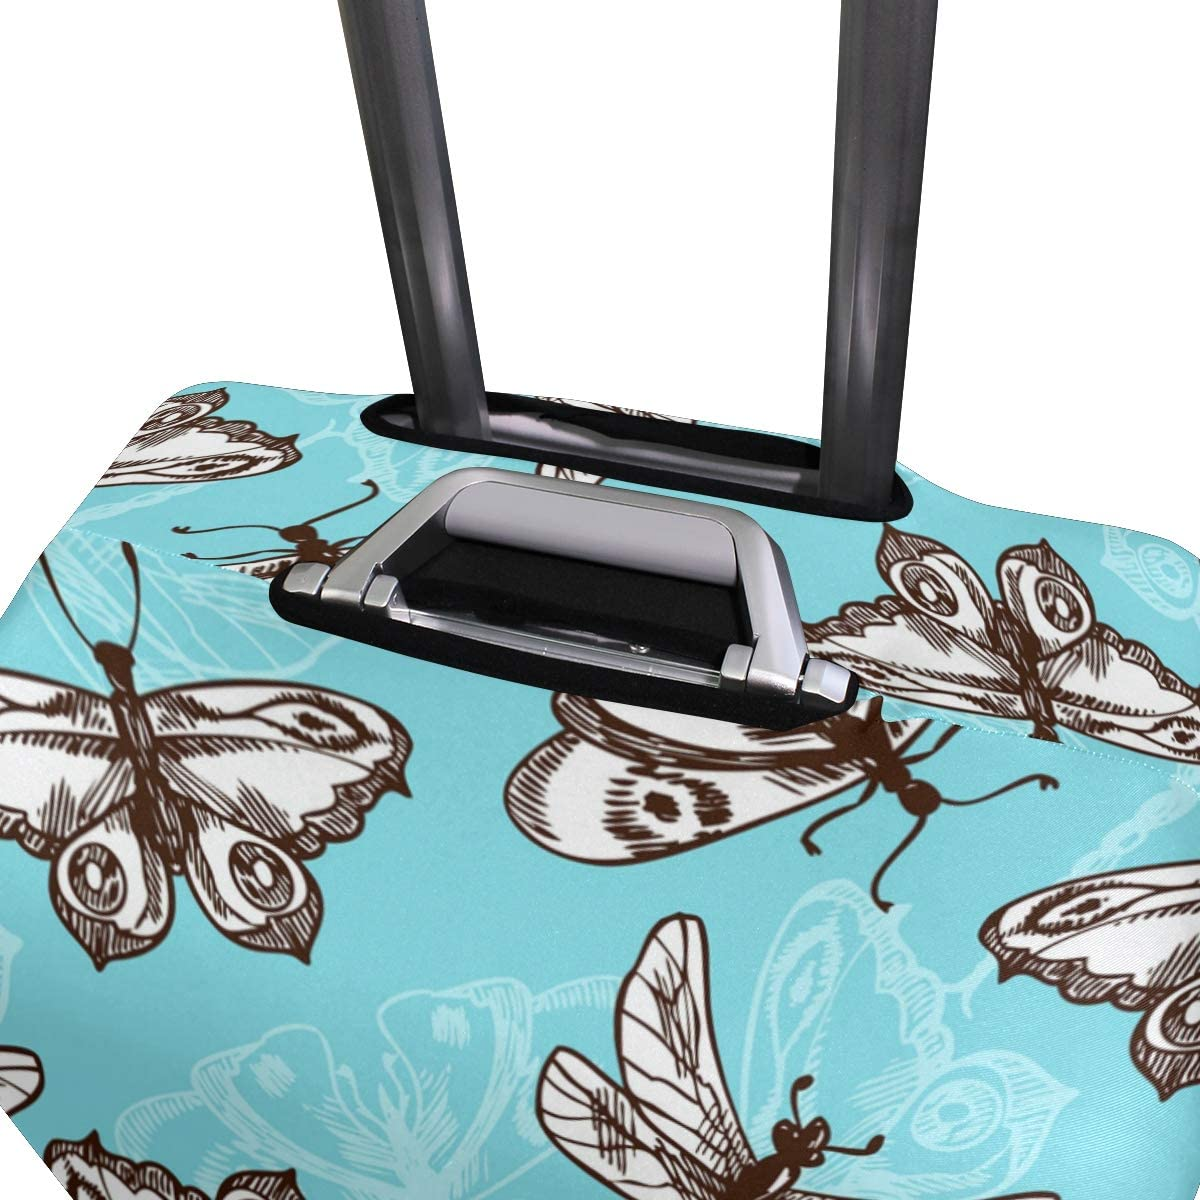 Travel Luggage Cover Butterflies Dragonflies Pattern Blue Suitcase Protector